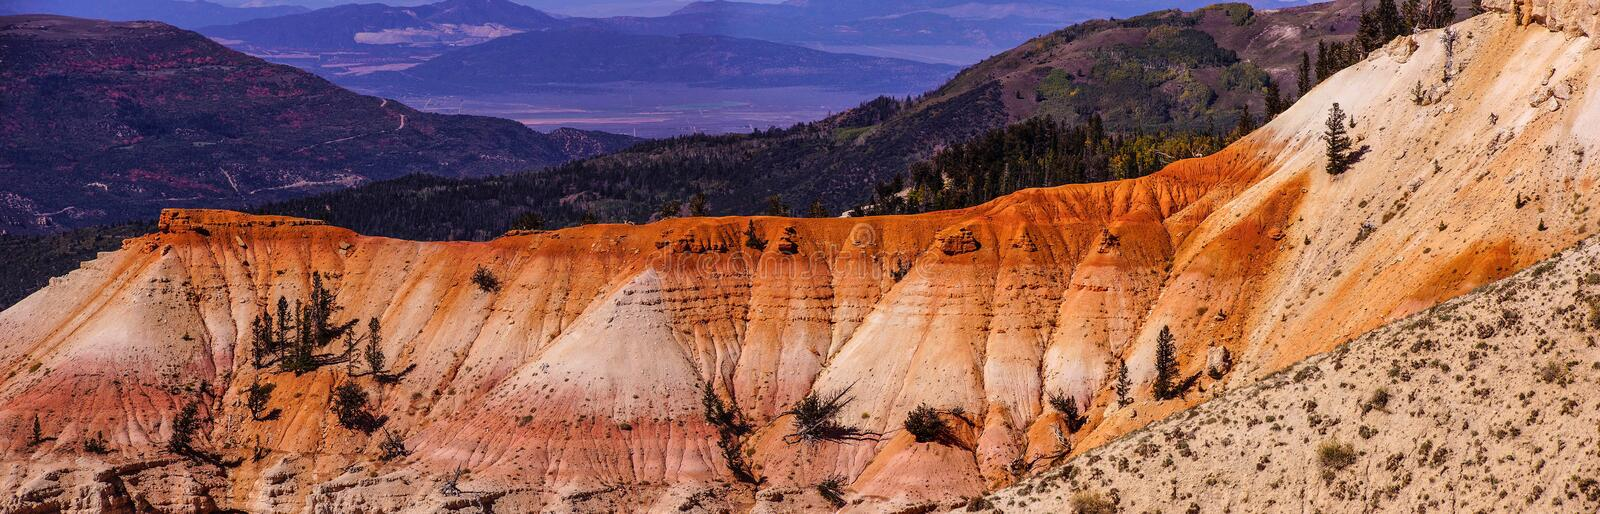 Panorama, fantasticly eroded red Navajo sandstone royalty free stock photography